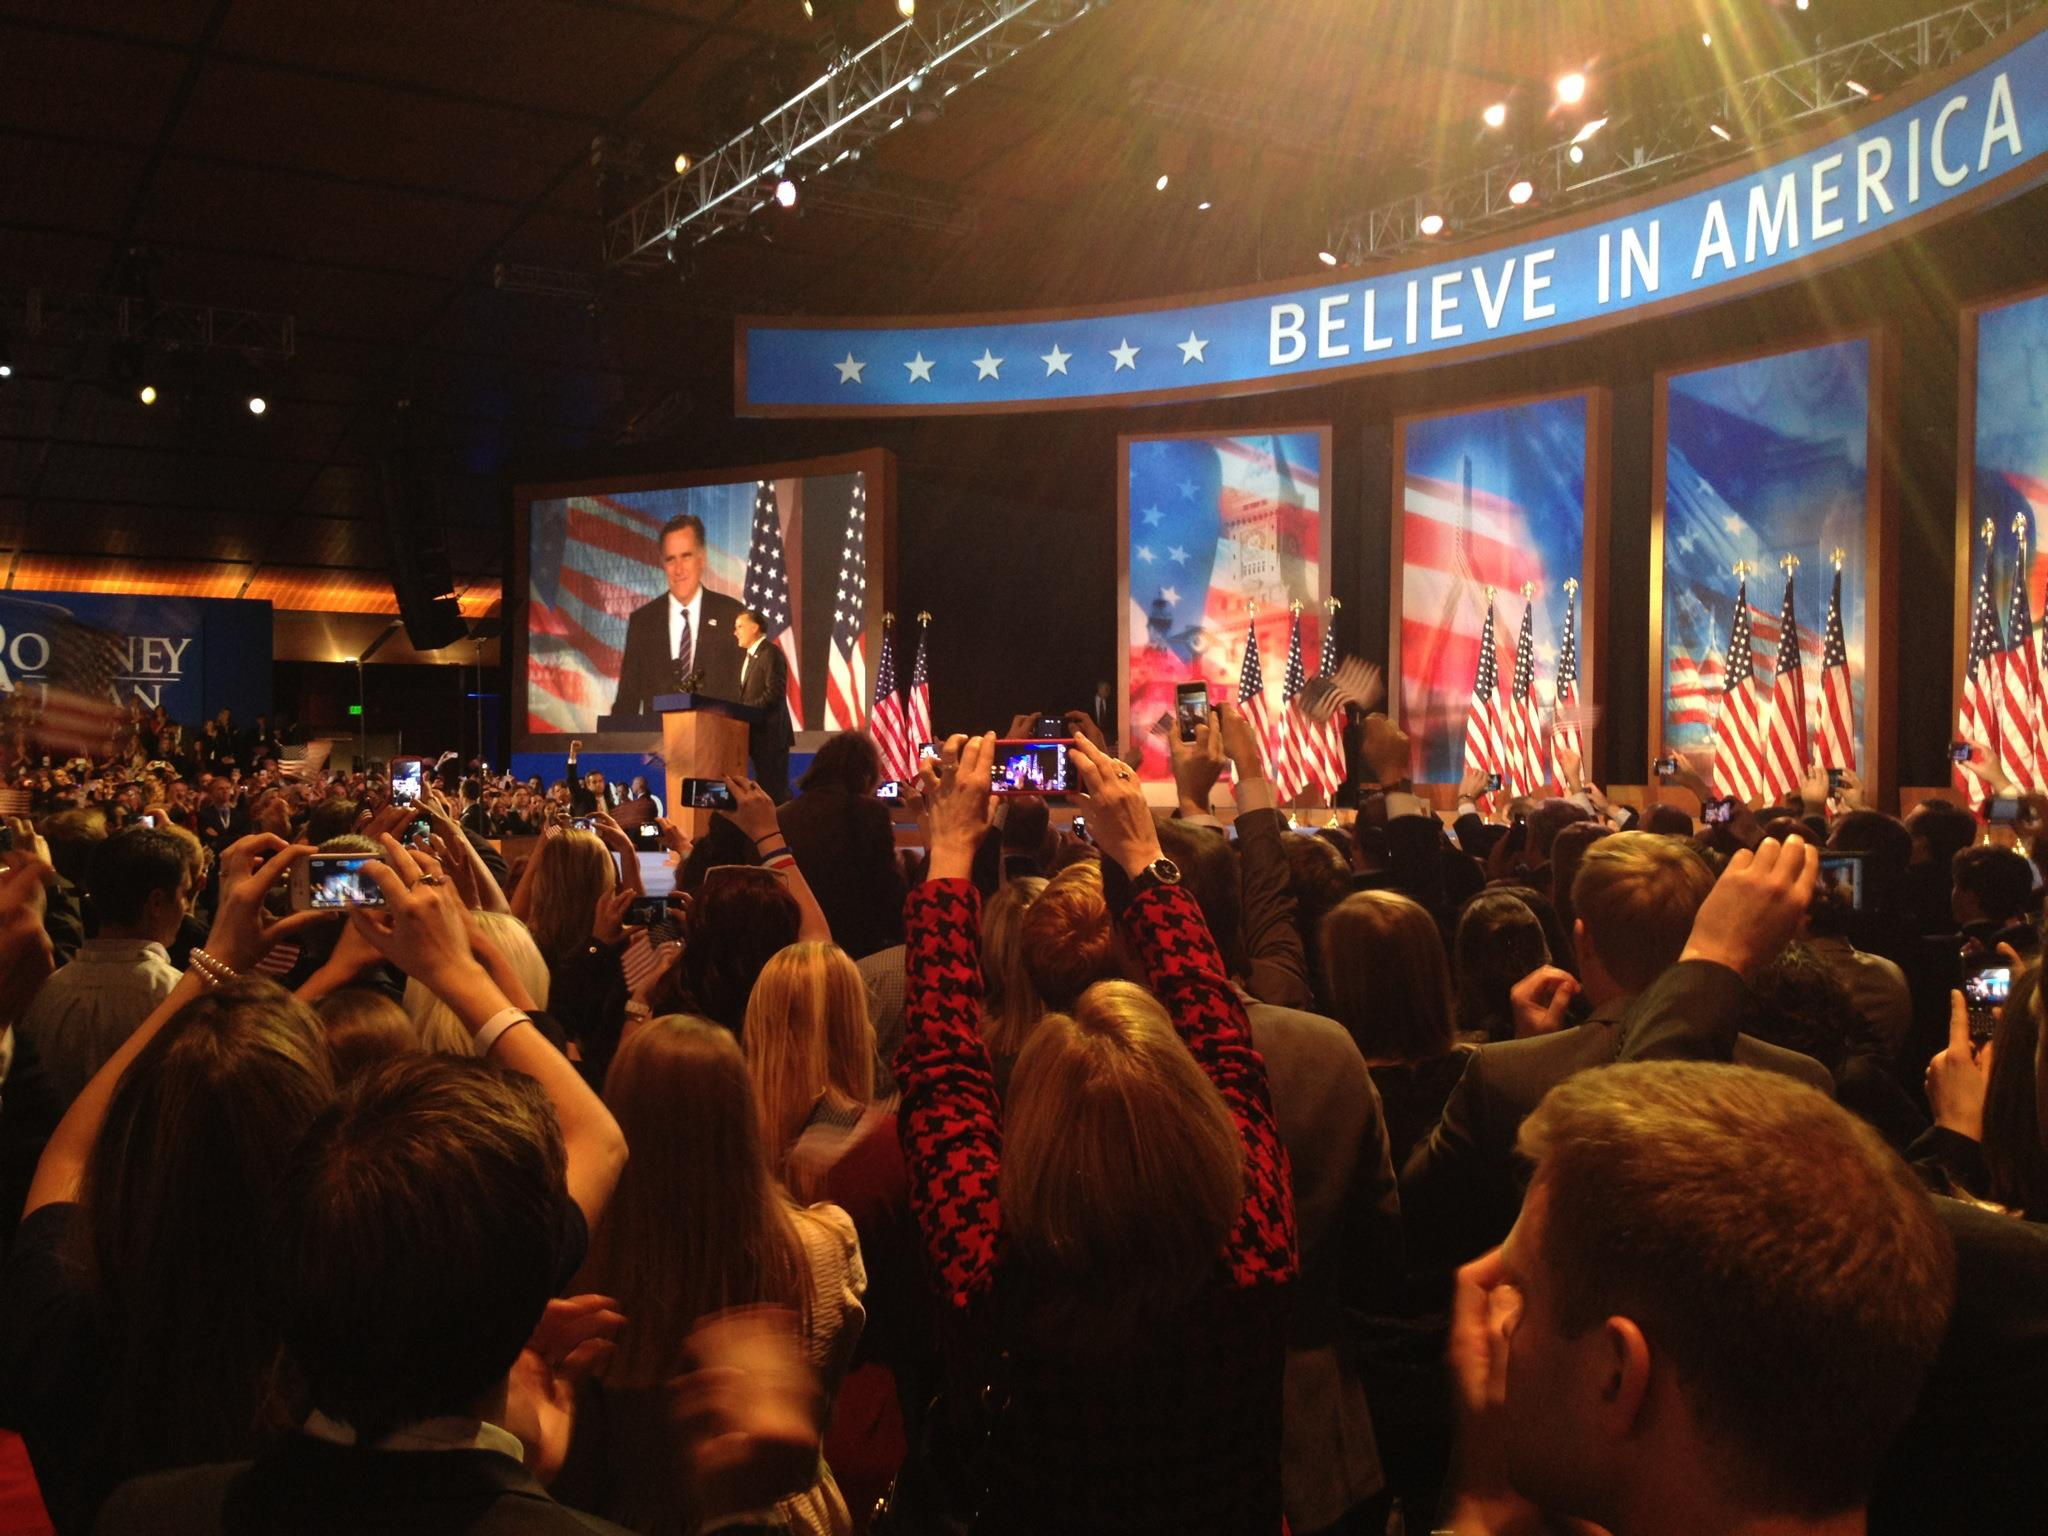 Governor Mitt Romney speaks to a crowd of supporters in November 2012.